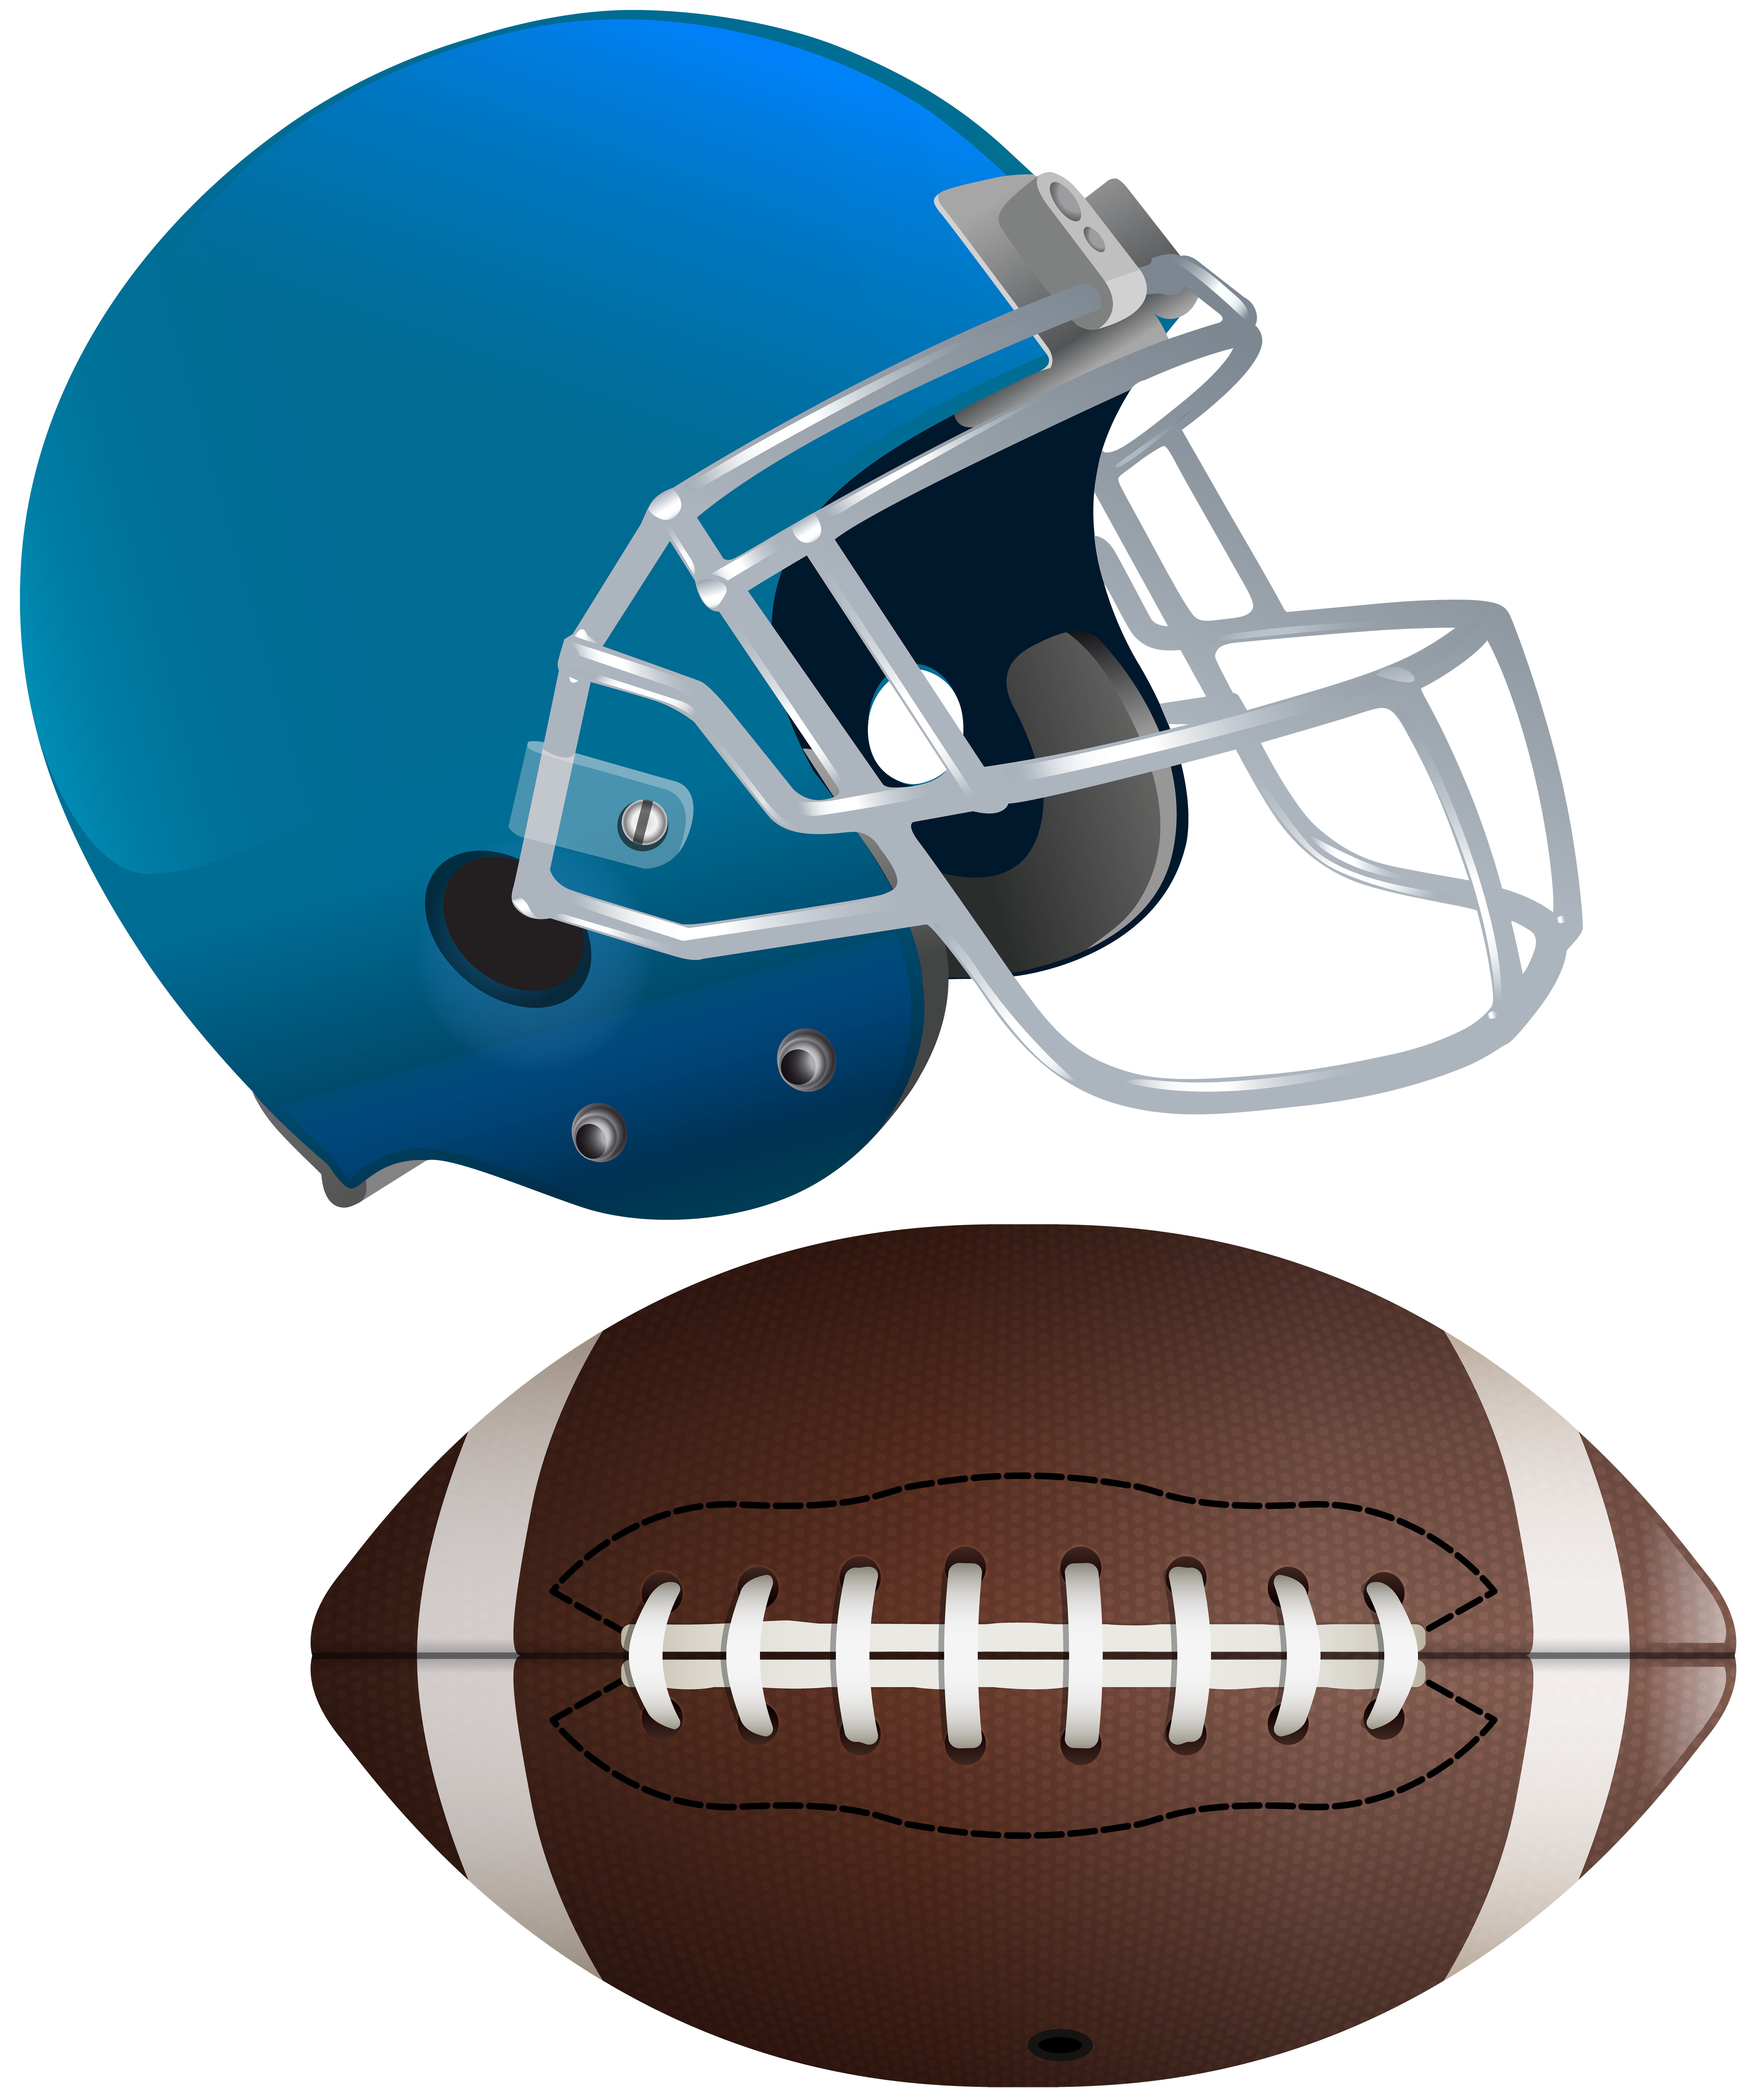 American football clipart free clip art transparent stock Football Ball Clipart at GetDrawings.com | Free for personal use ... clip art transparent stock